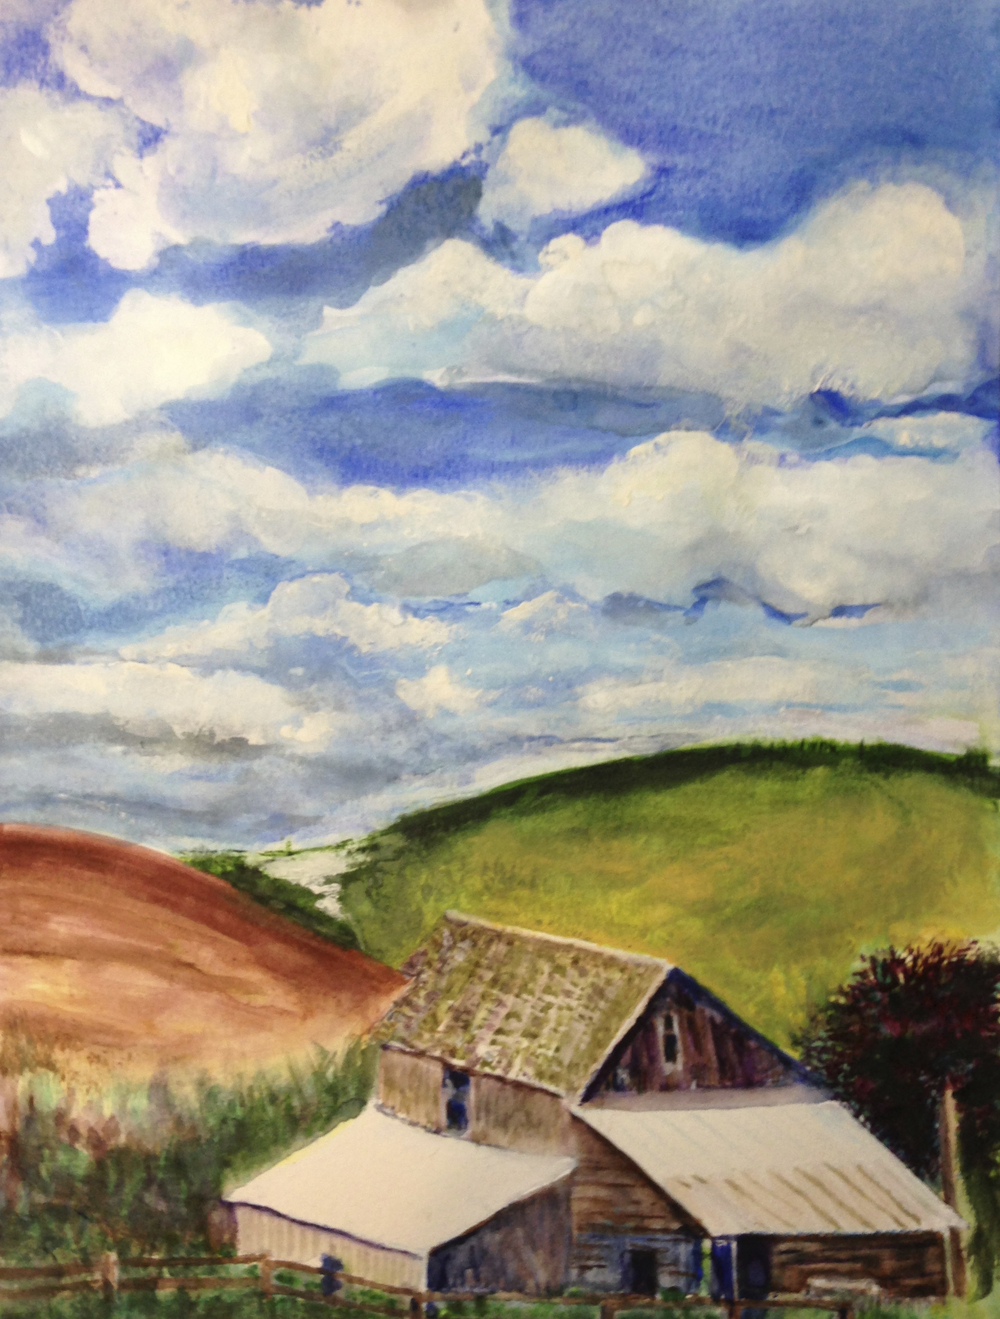 Idaho barns and sky, watercolor, by George Porter